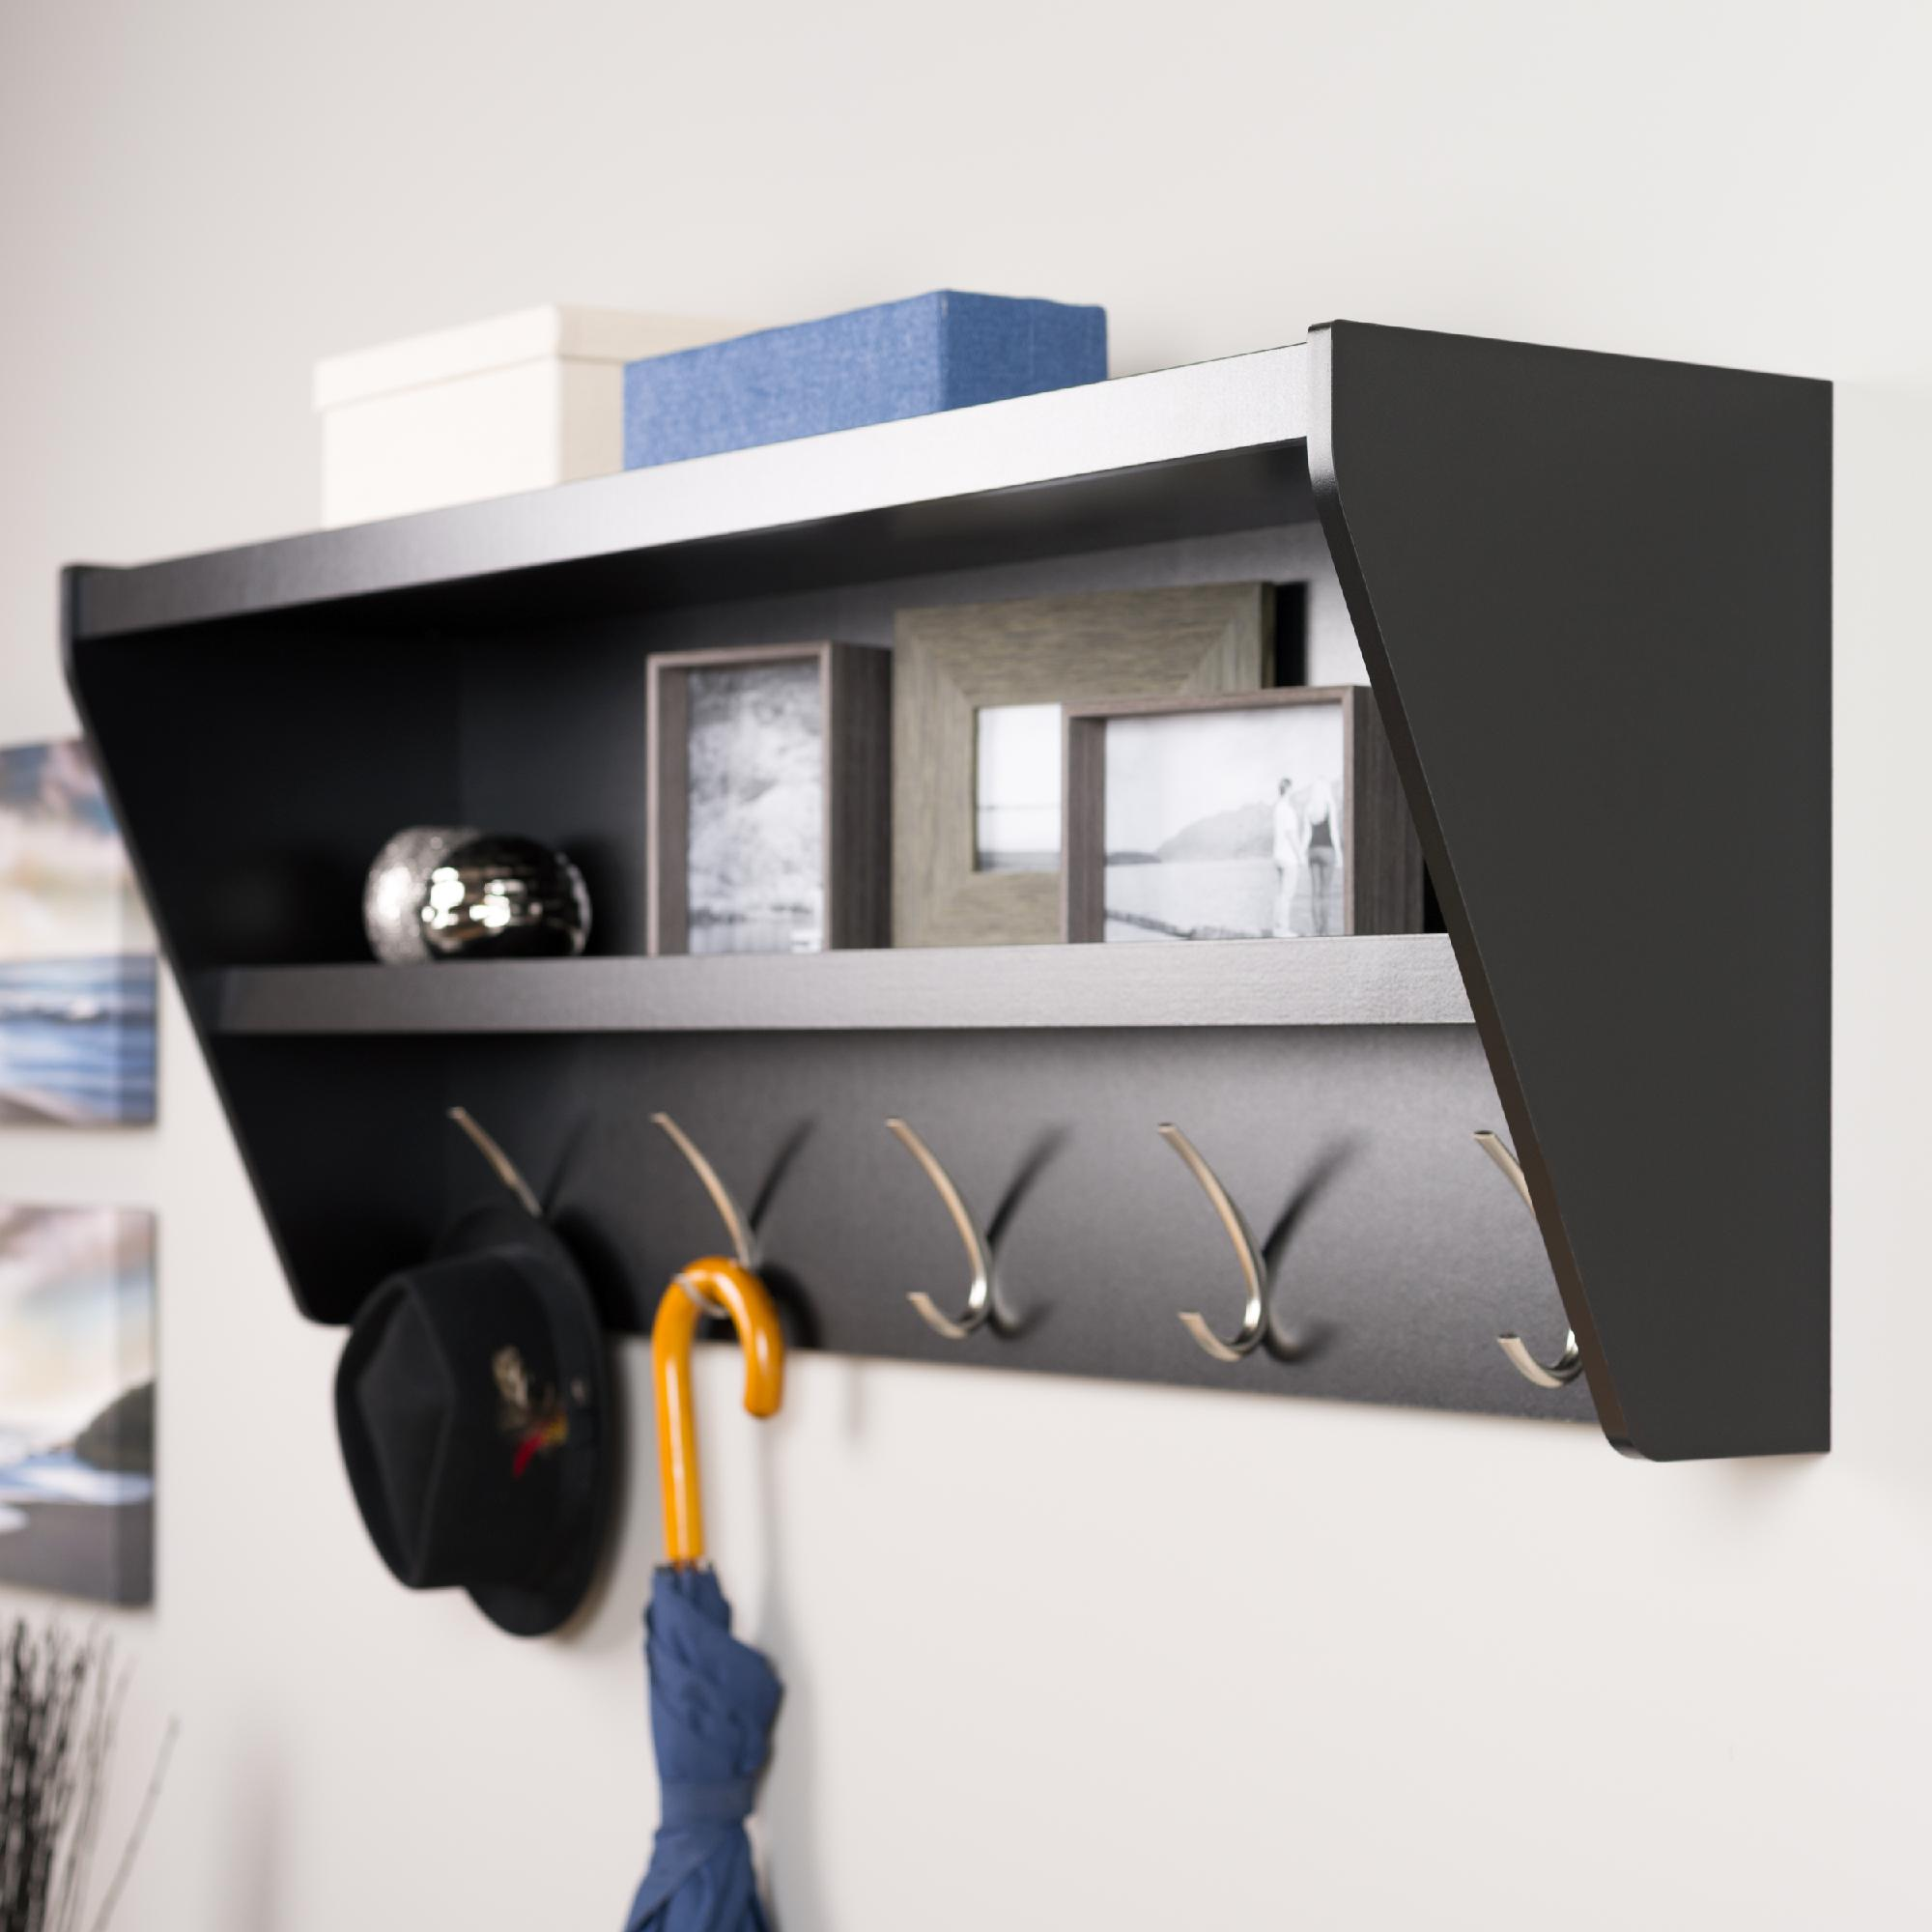 prepac floating entryway shelf coat rack black spin prod and office racks wall mounted modern display shelves height above counter command strips for hanging french cleat strength